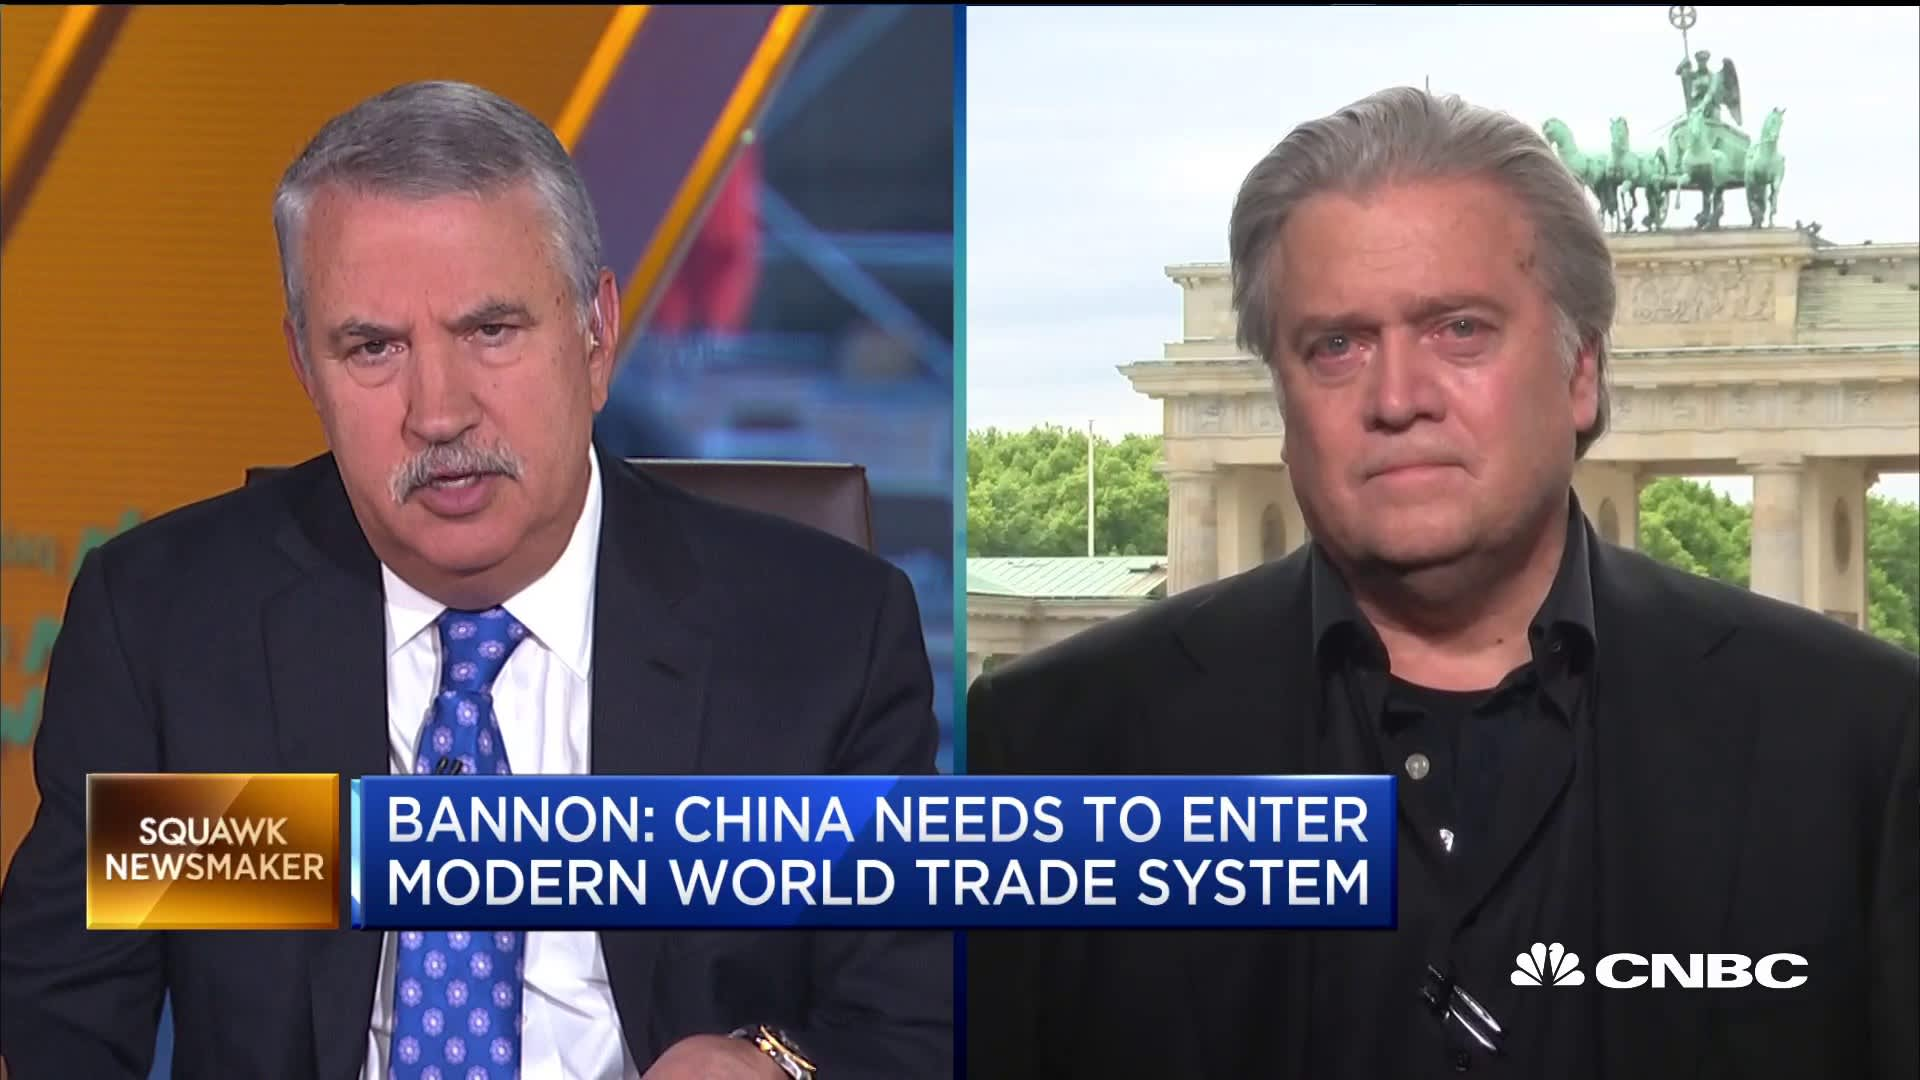 Opposites attract: Even Steve Bannon and Tom Friedman agree Trump is right to attack on China trade